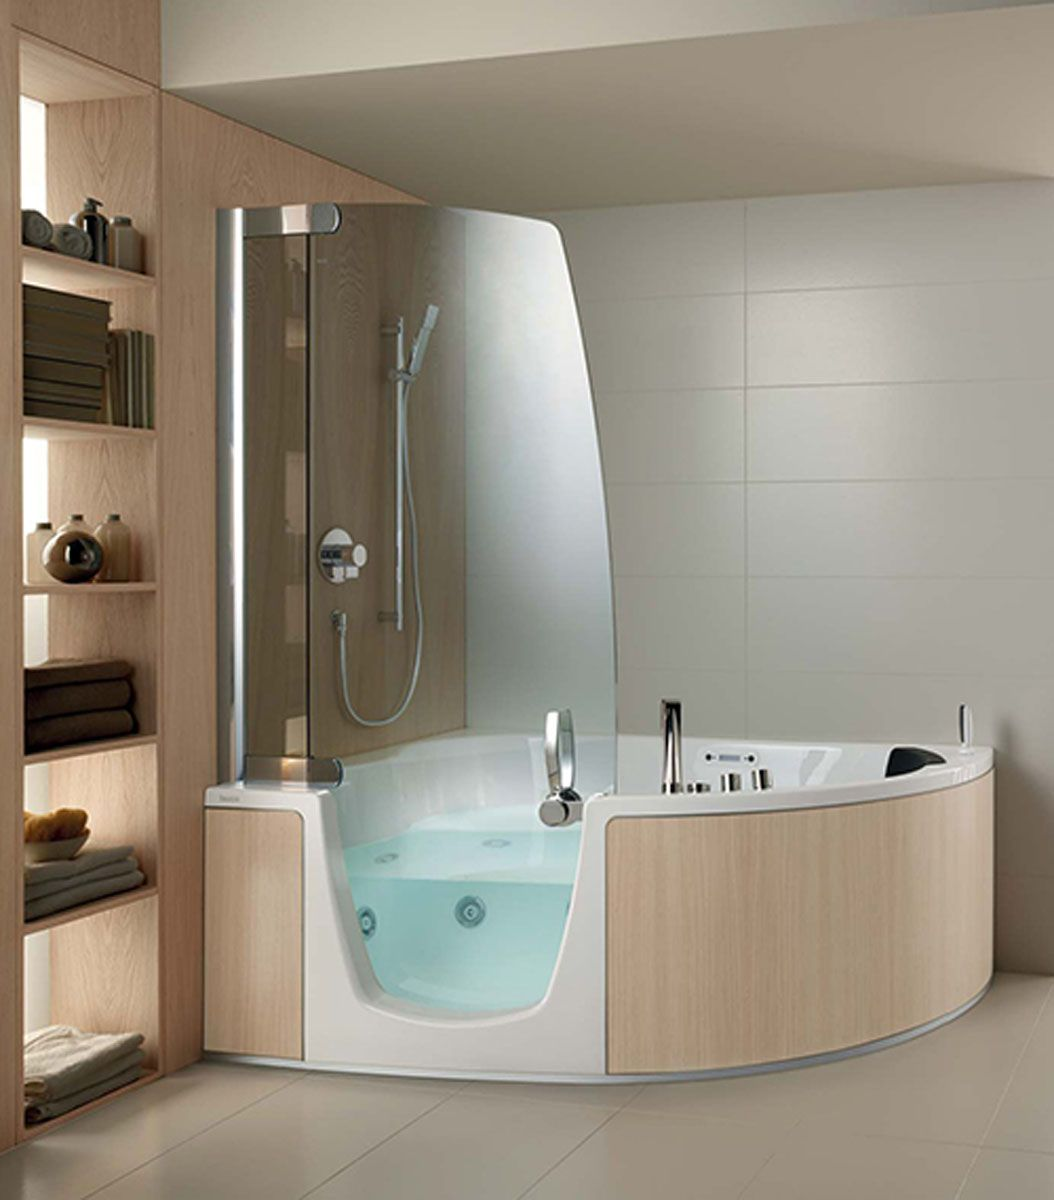 Corner Whirlpool Shower Combo Teuco Bath Accessories Italy Quot Eagle Steam And Bathtub Unit Tub Homeariel With